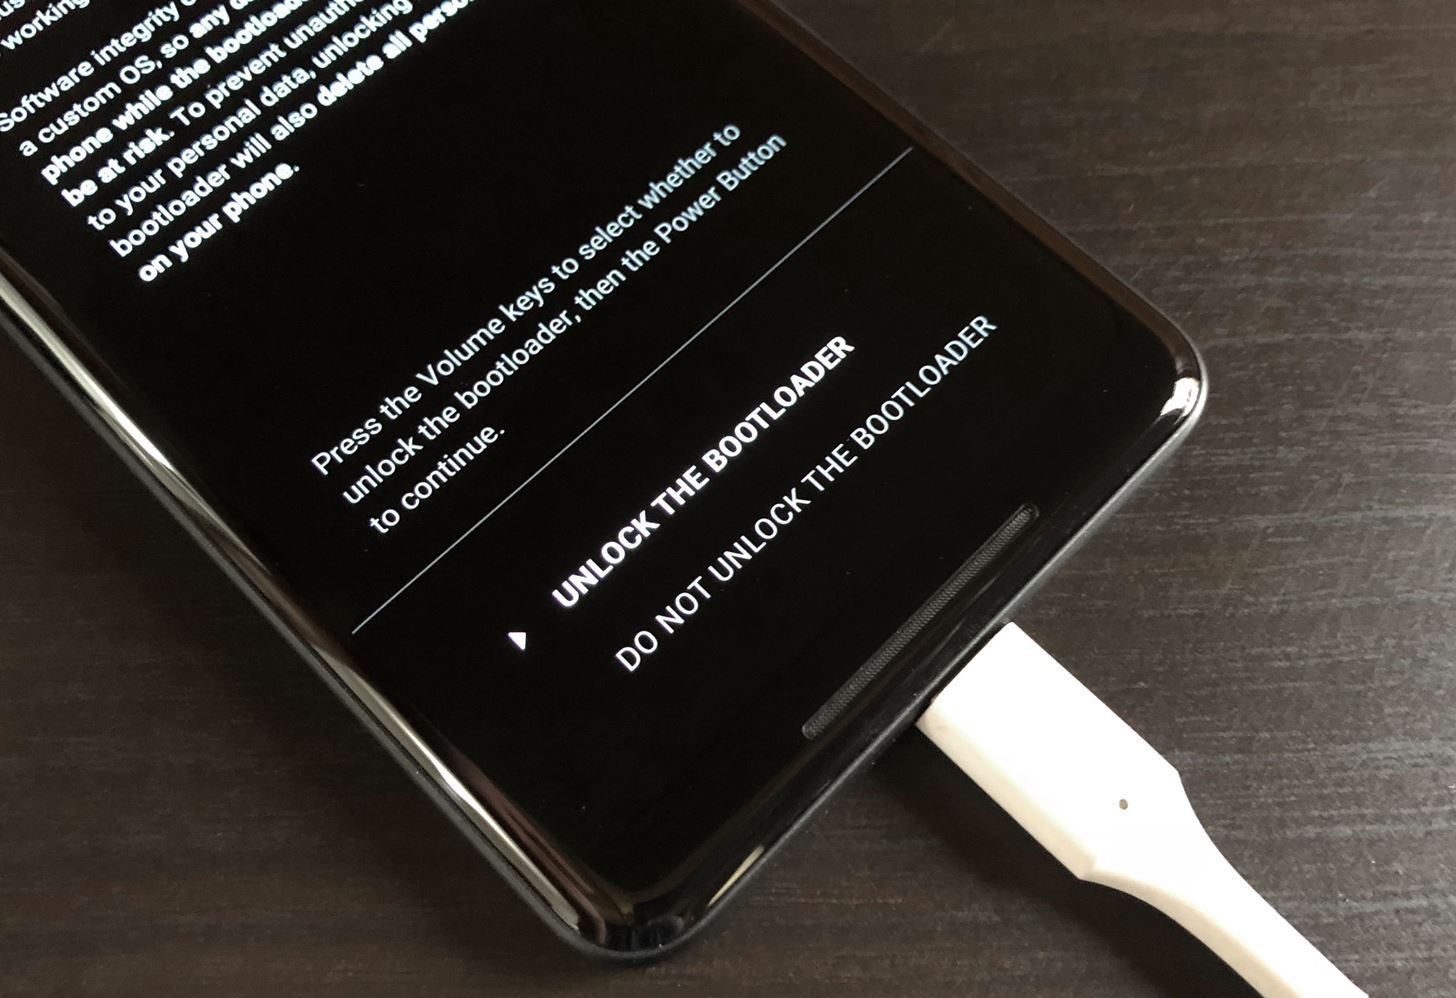 How to Unlock the Bootloader on Your Pixel 2 or Pixel 2 XL